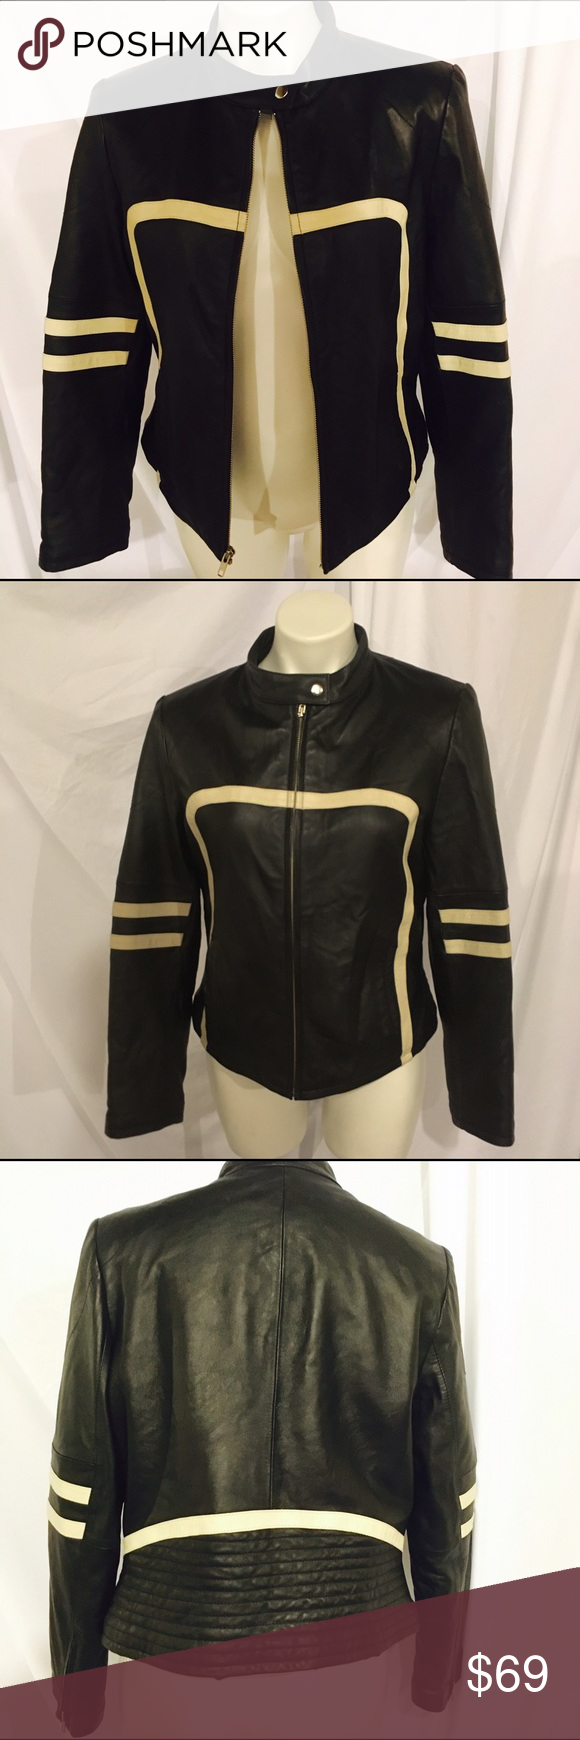 Vintage Wilsons Leather Maxima leather Jacket S (With